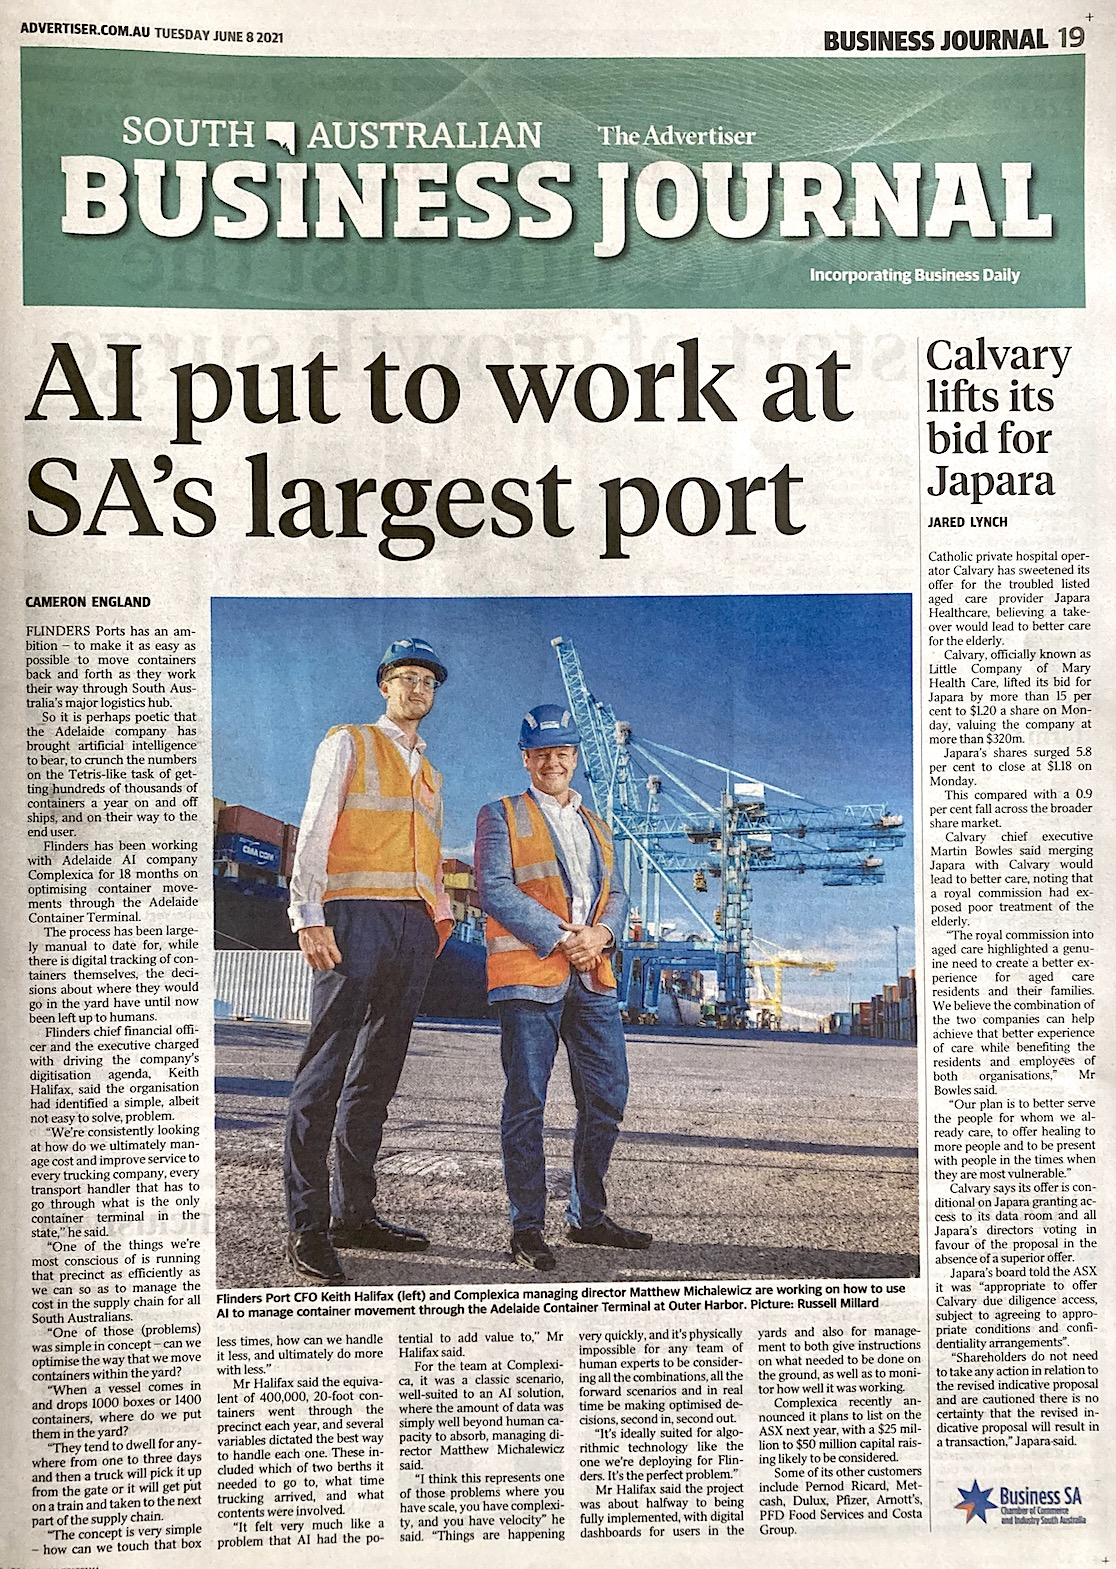 Flinders Ports and Complexica